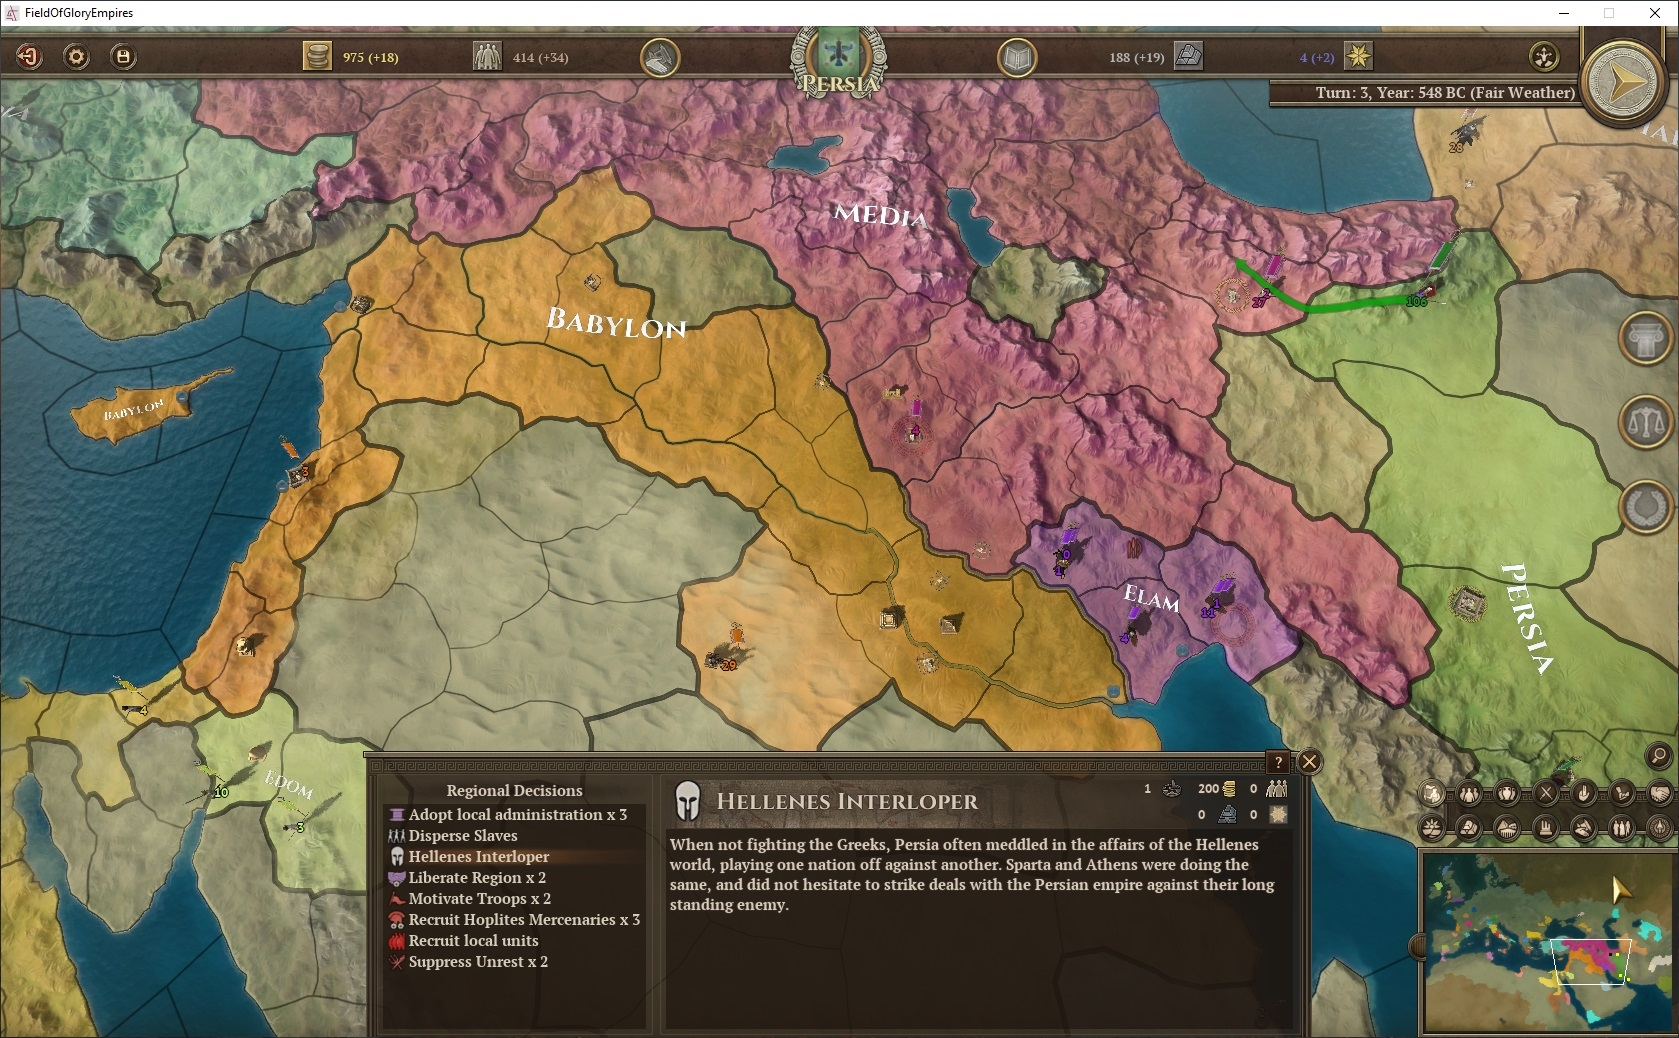 Field of Glory: Empires - Persia 550 - 330 BCE | ROW (fce8c172-4d14-46a6-8621-c2afe23d392a)